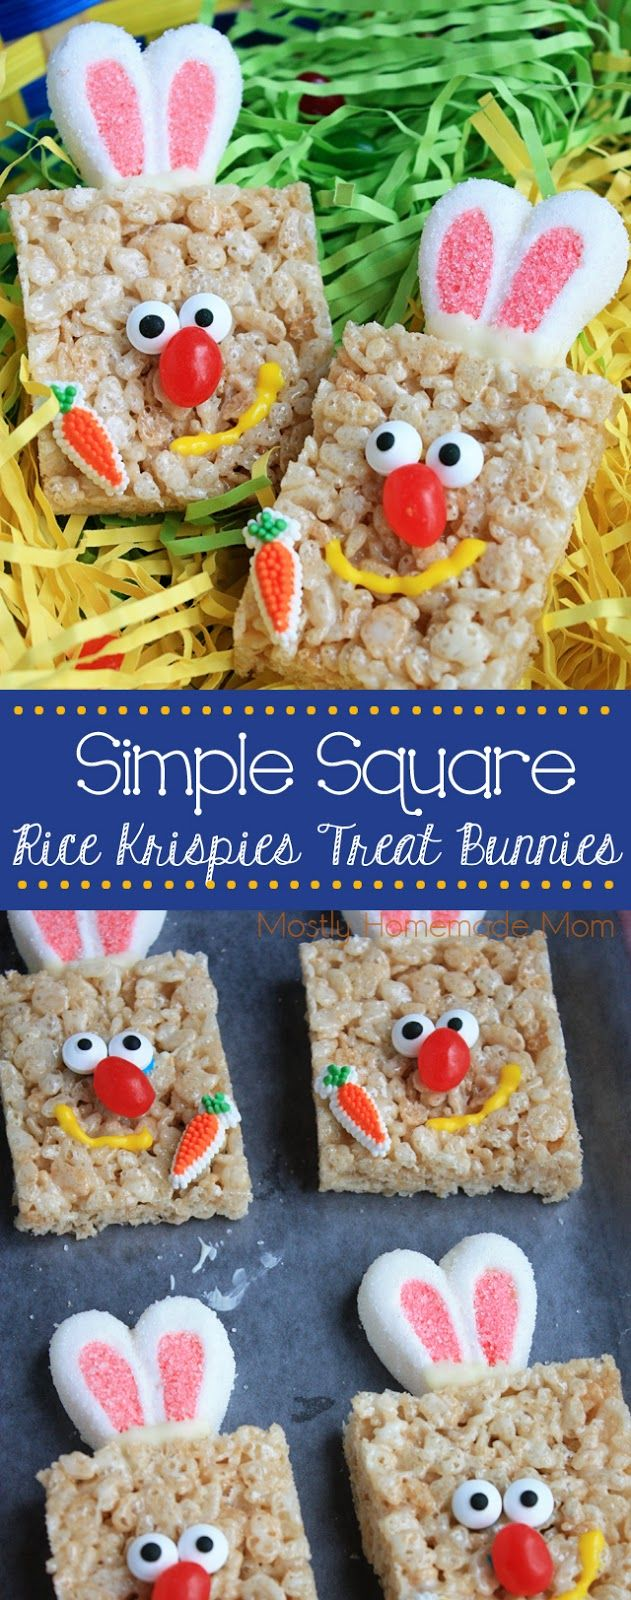 128 best easter treats images on pinterest rice krispies treats simple square rice krispies treat bunnies no need to get super fancy for these fun negle Gallery